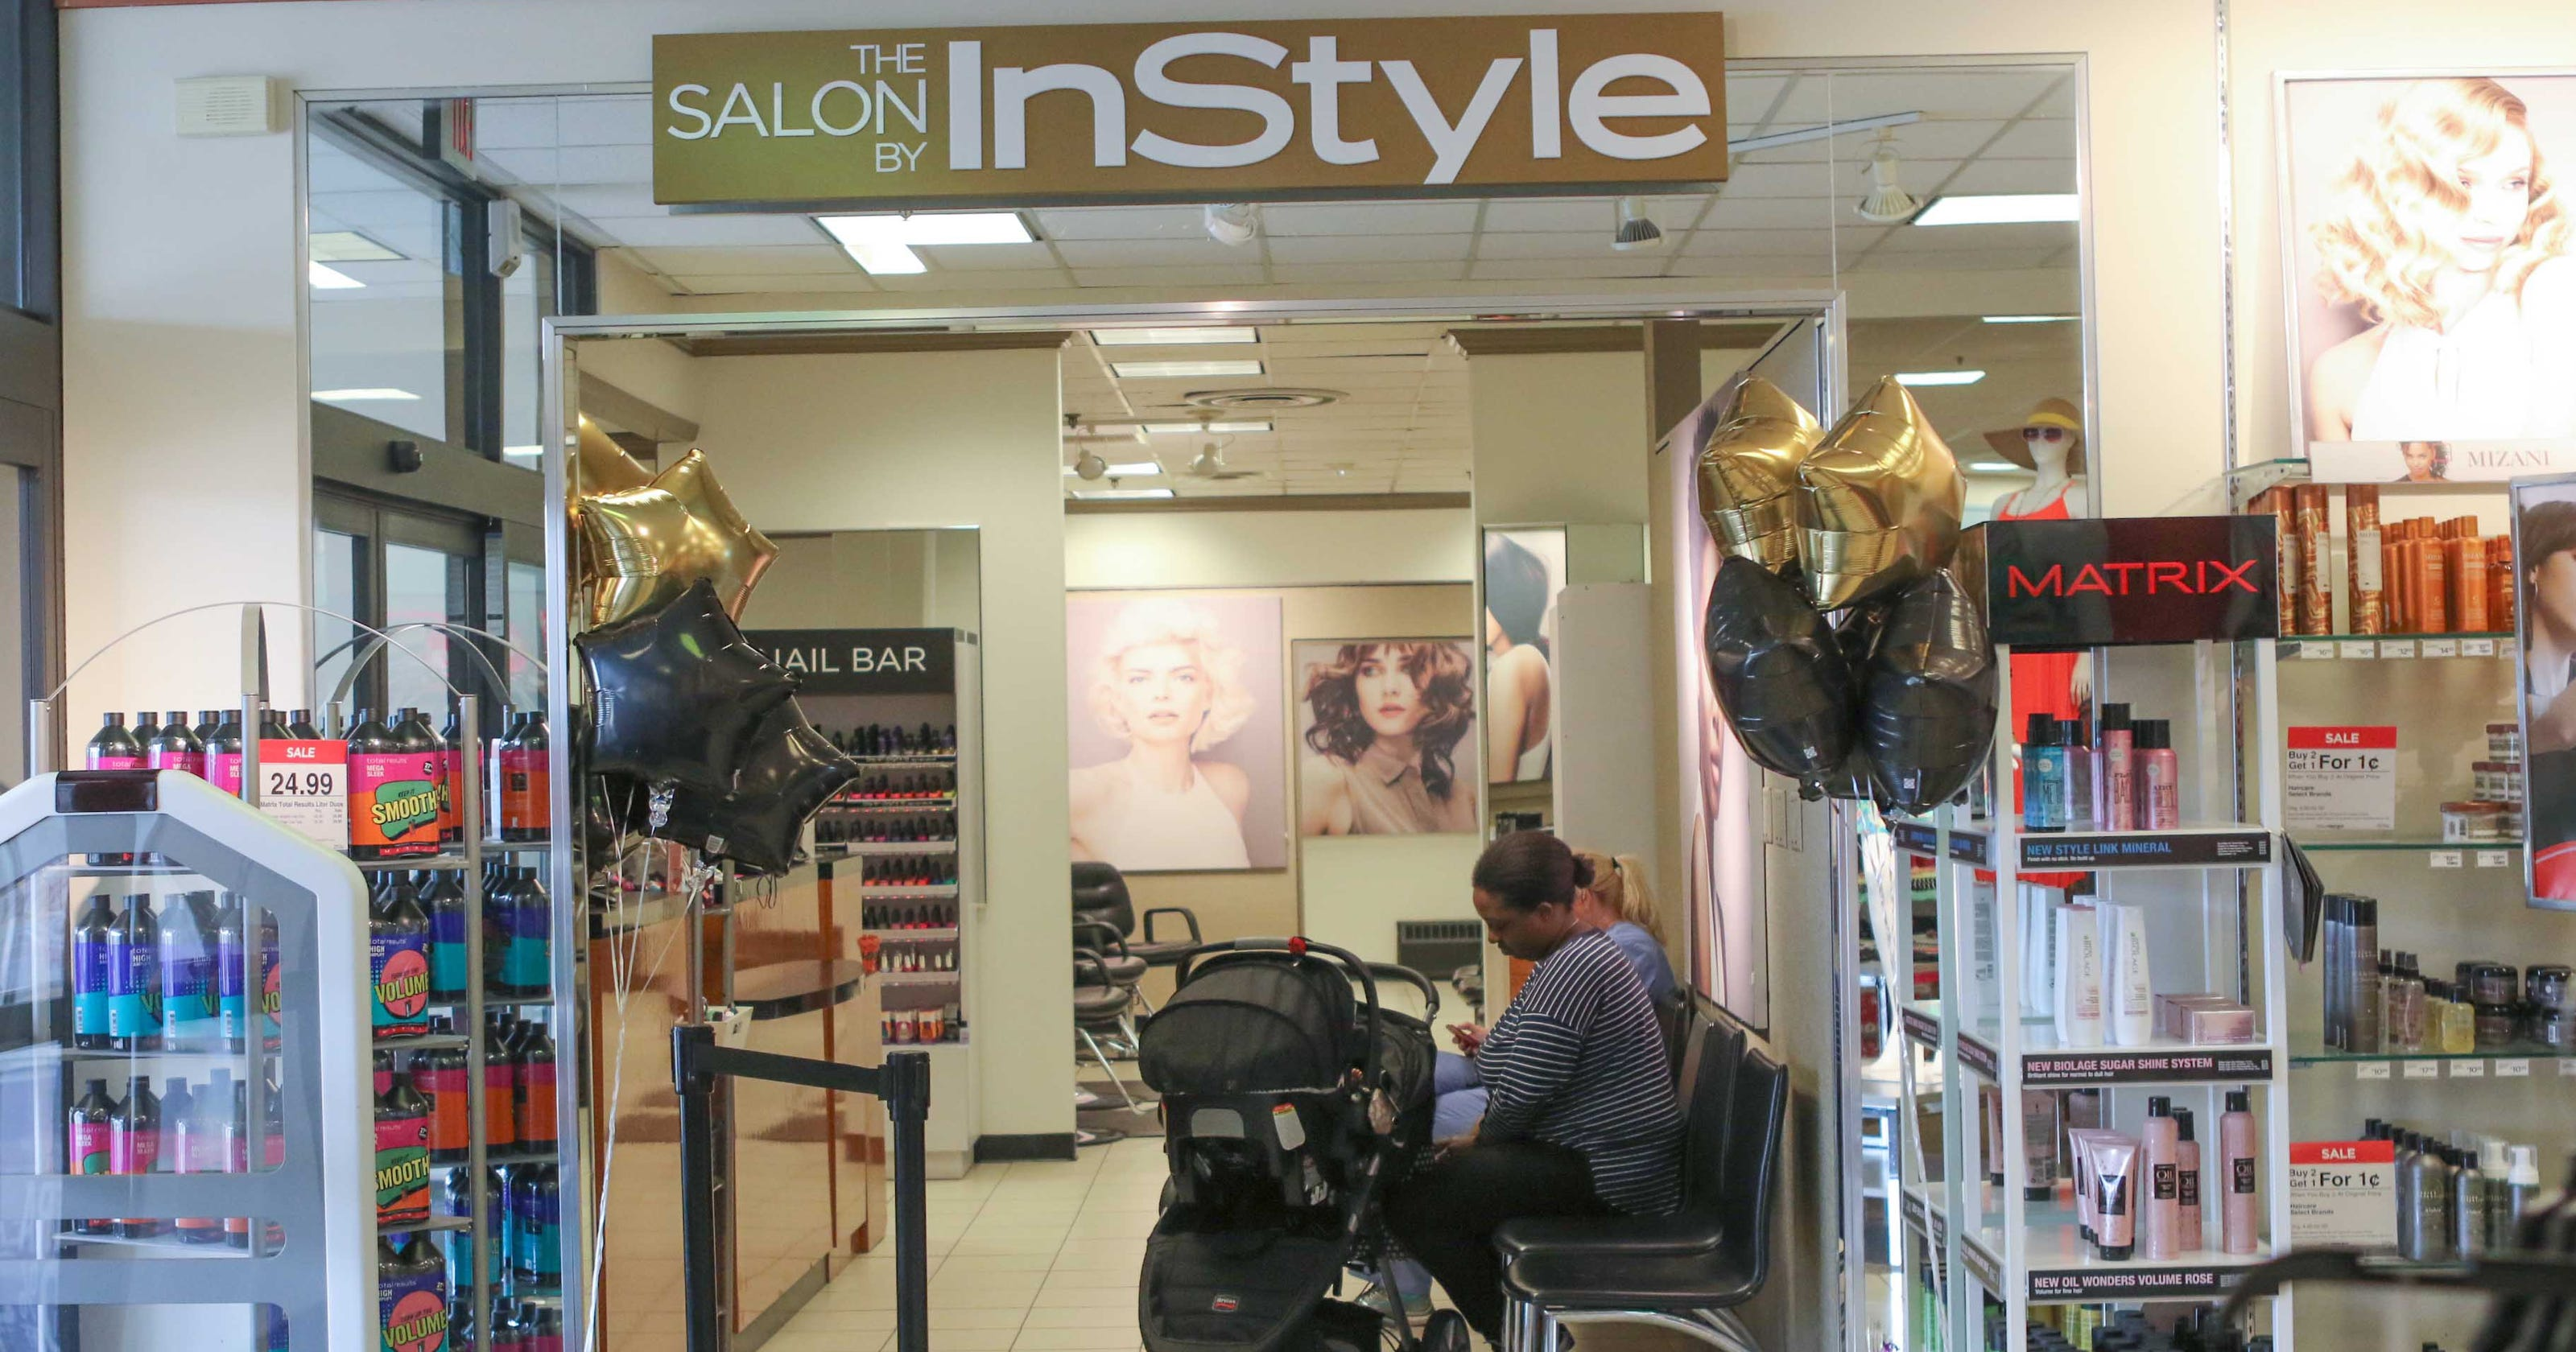 Jc Penney Unveils Instyle Salon At Christiana Mall